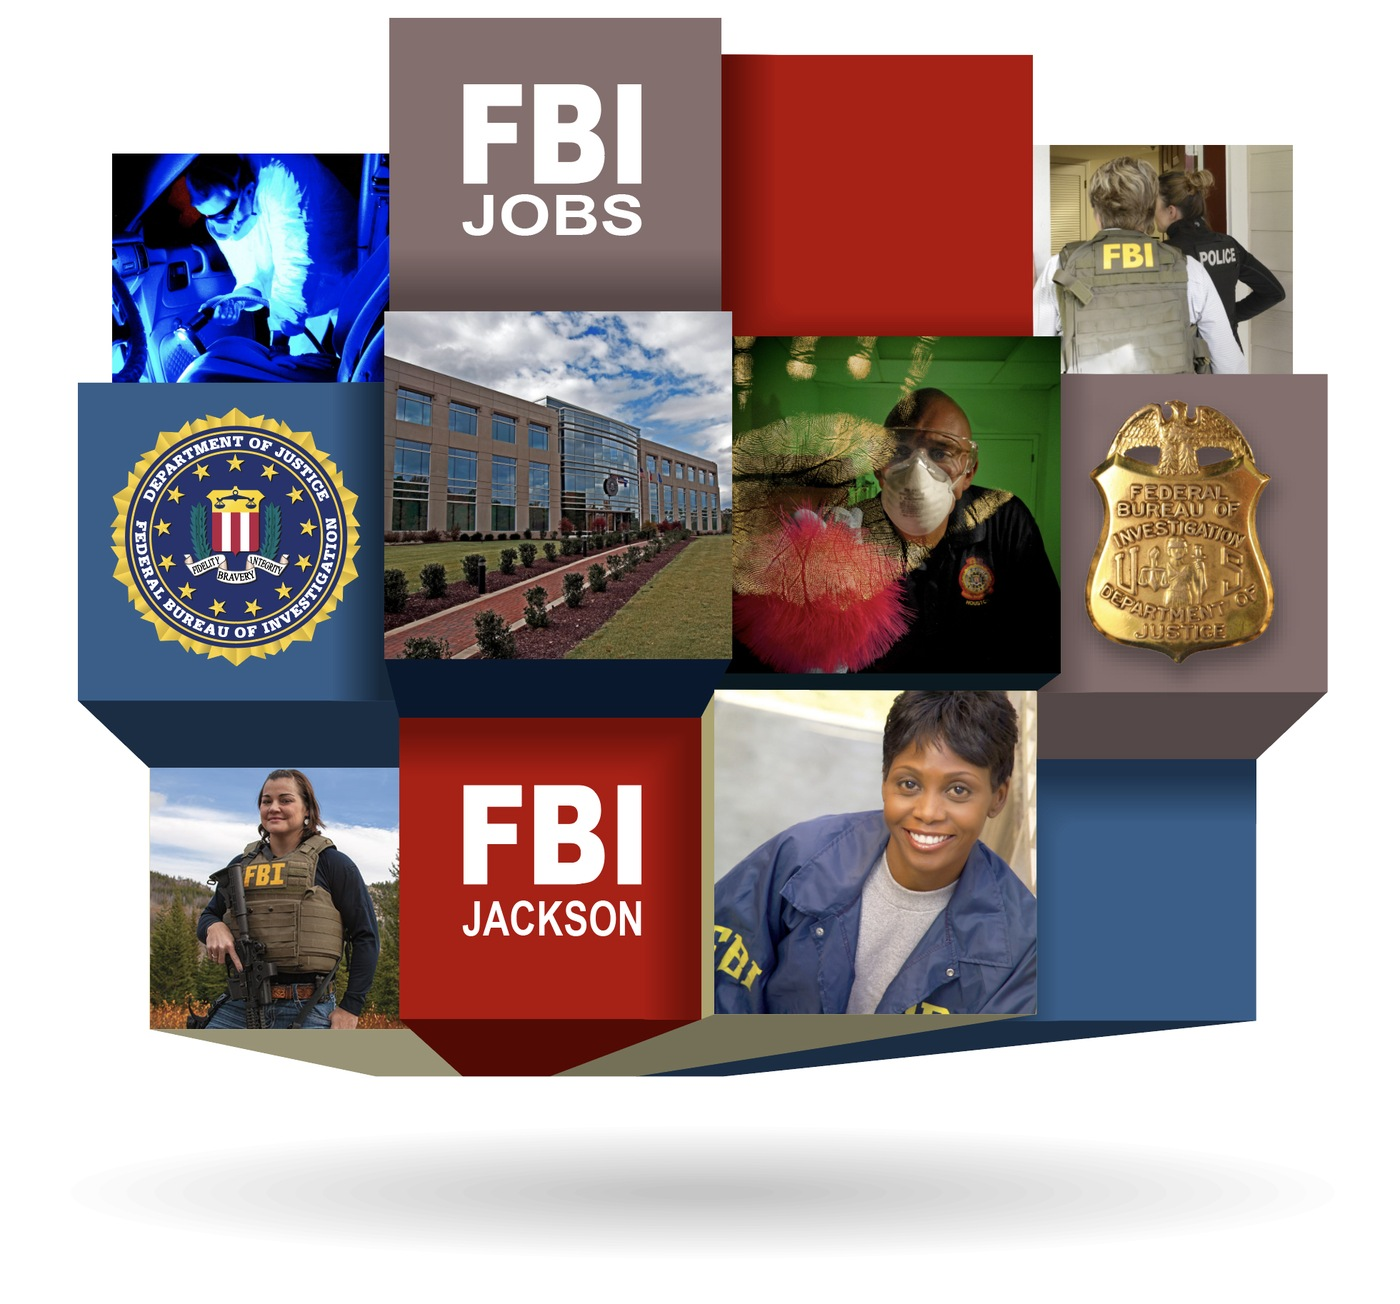 FBI Jackson recruitment